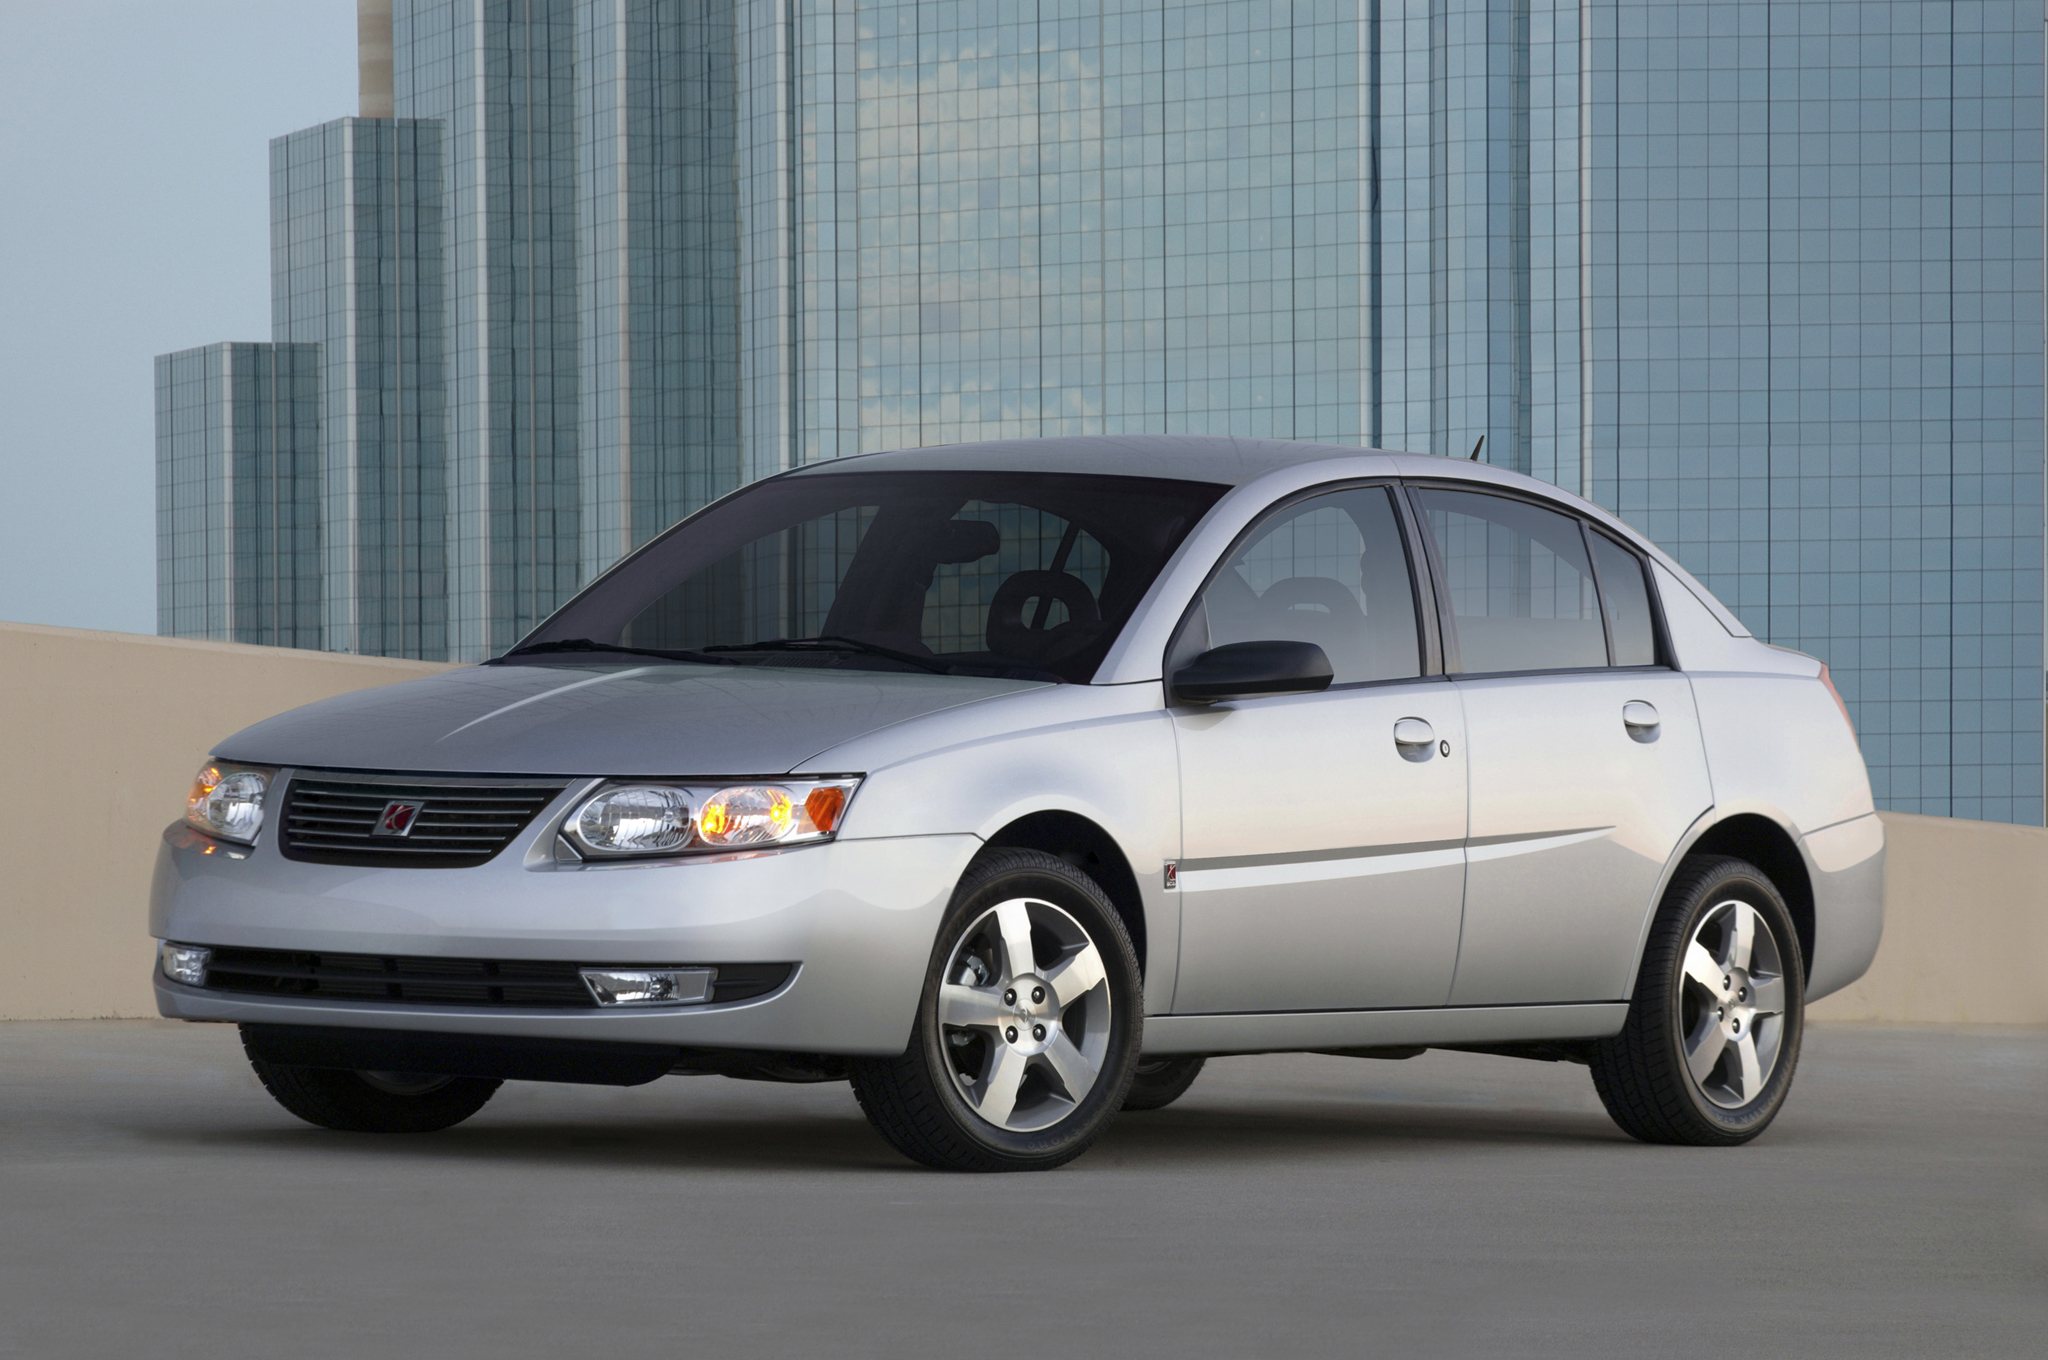 hight resolution of gm expands ignition recall to 1 36 million vehicles including chevrolet hhr saturn ion